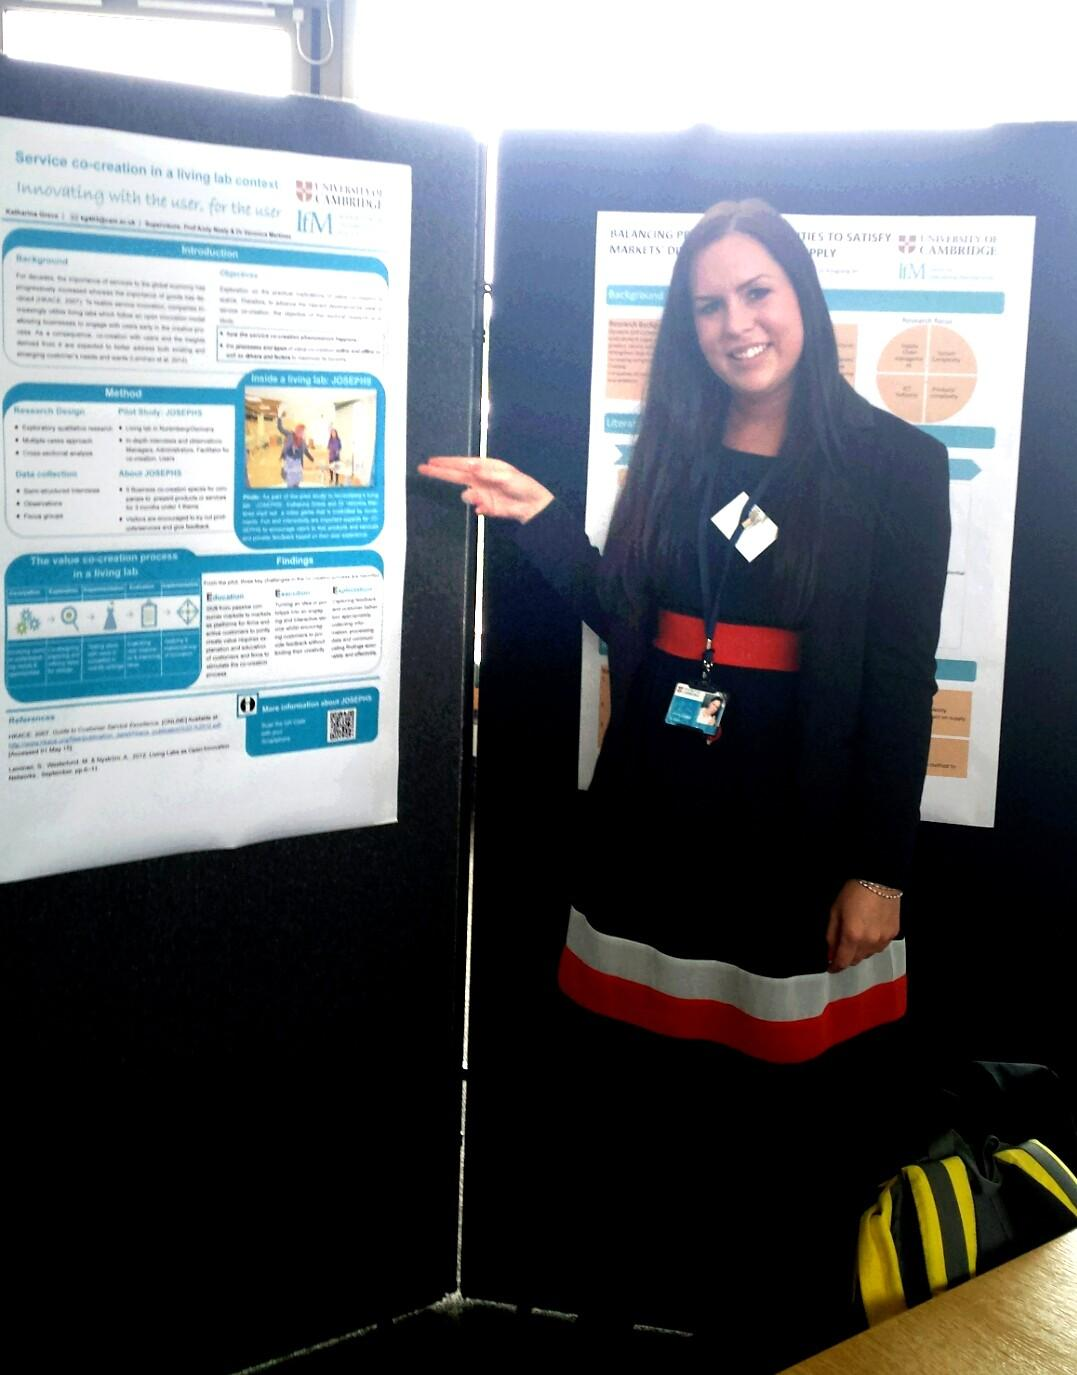 Alliance Research presented at IfM PhD Conference